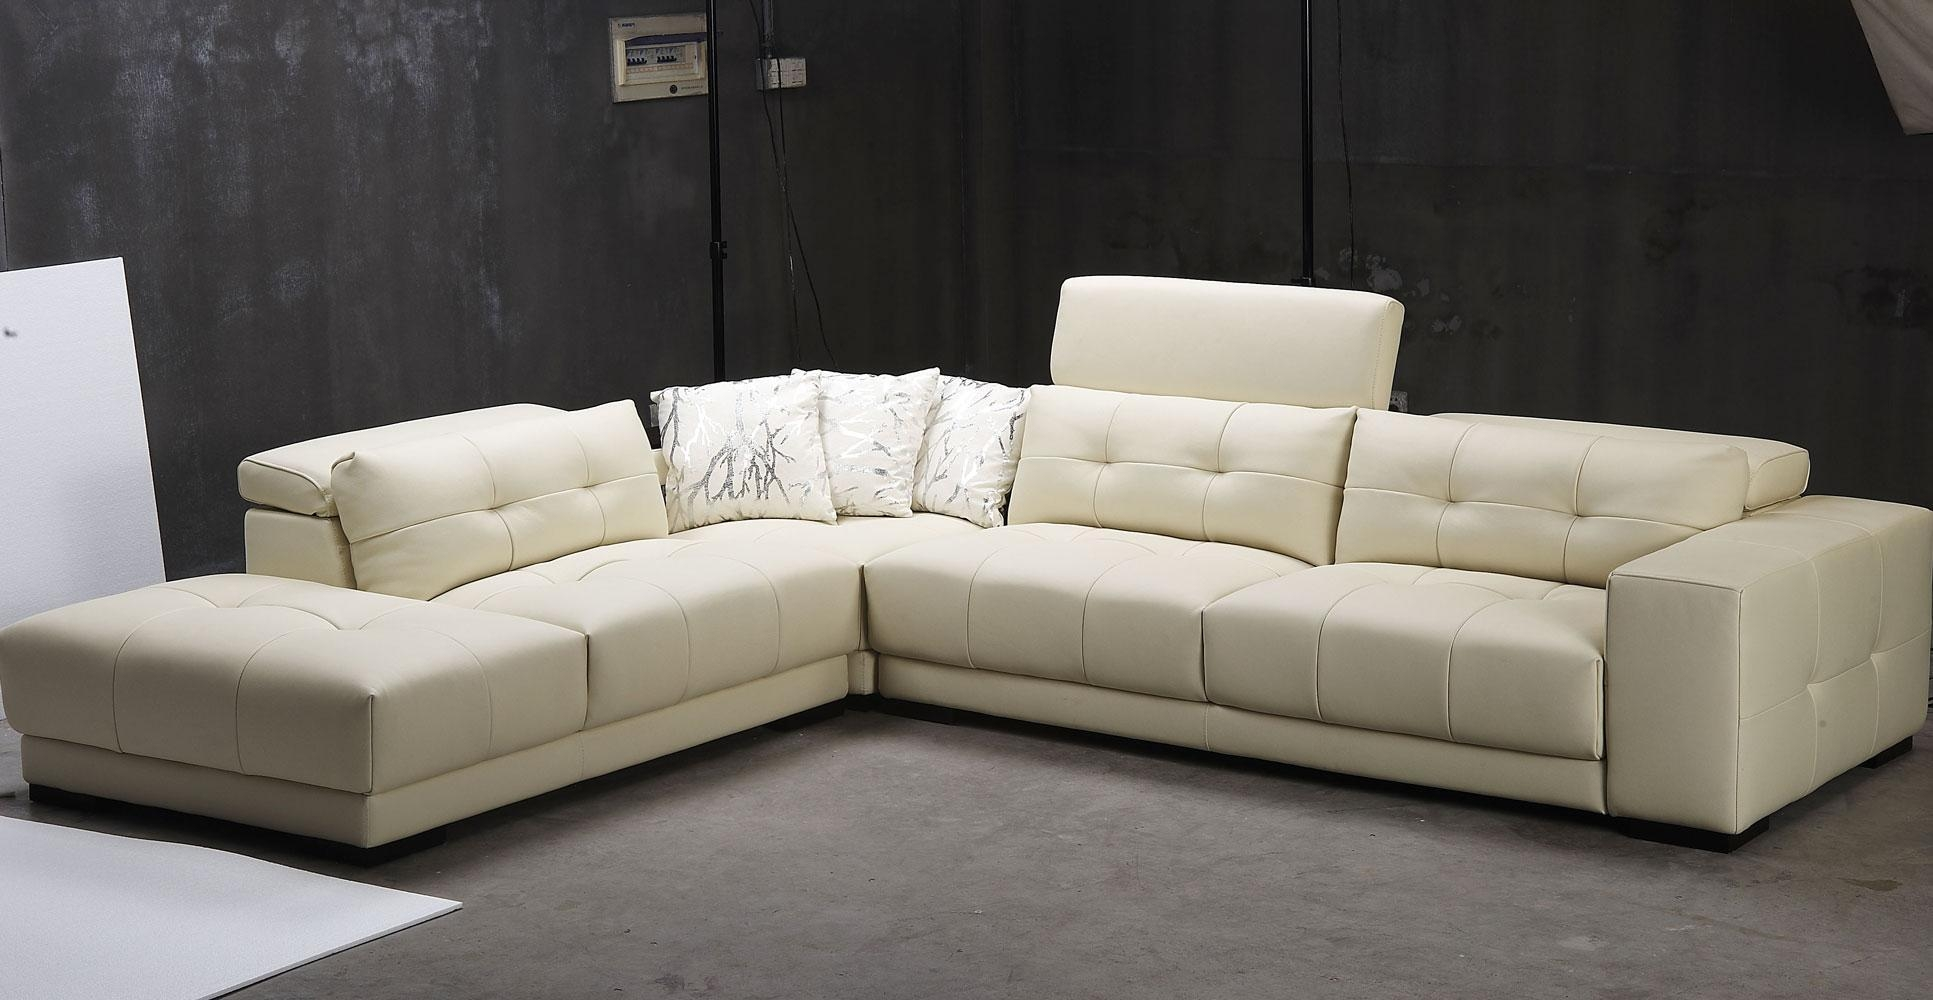 Sofas : Fabulous Leather Sleeper Sofa Sofas And Sectionals Modern Regarding Cream Sectional Leather Sofas (Image 20 of 22)